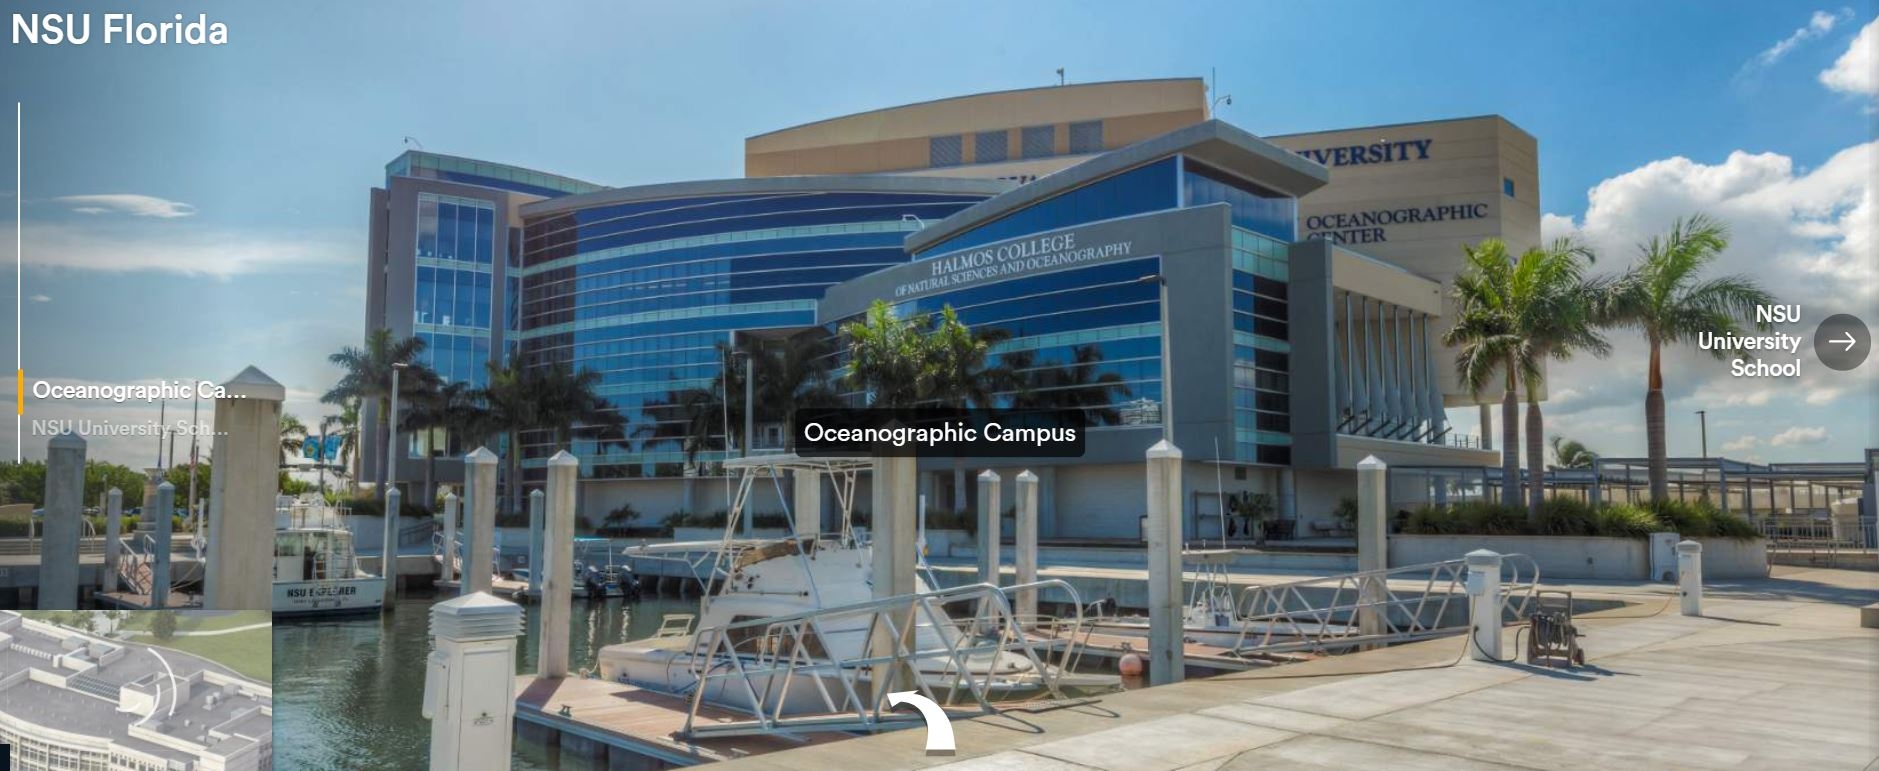 nsu-oceanographic-campus-virtual-tour.jpg